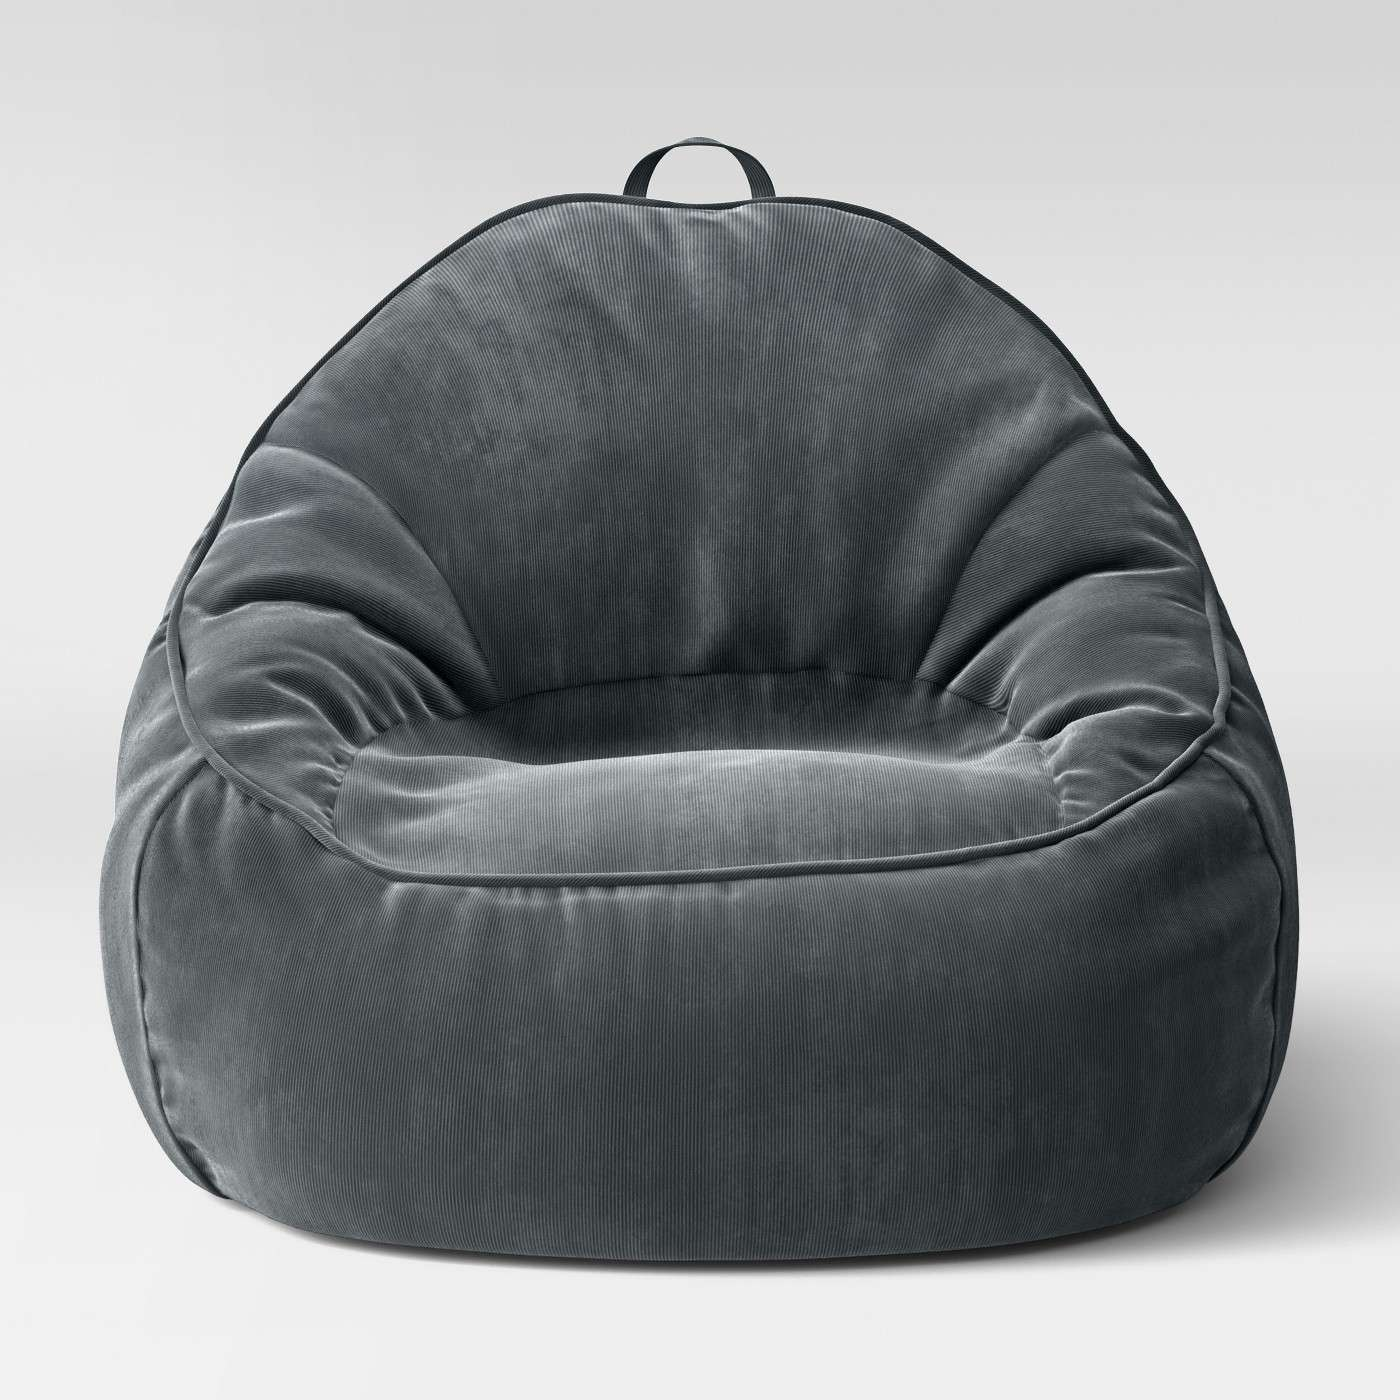 The 7 Best Bean Bag Chairs Of 2019